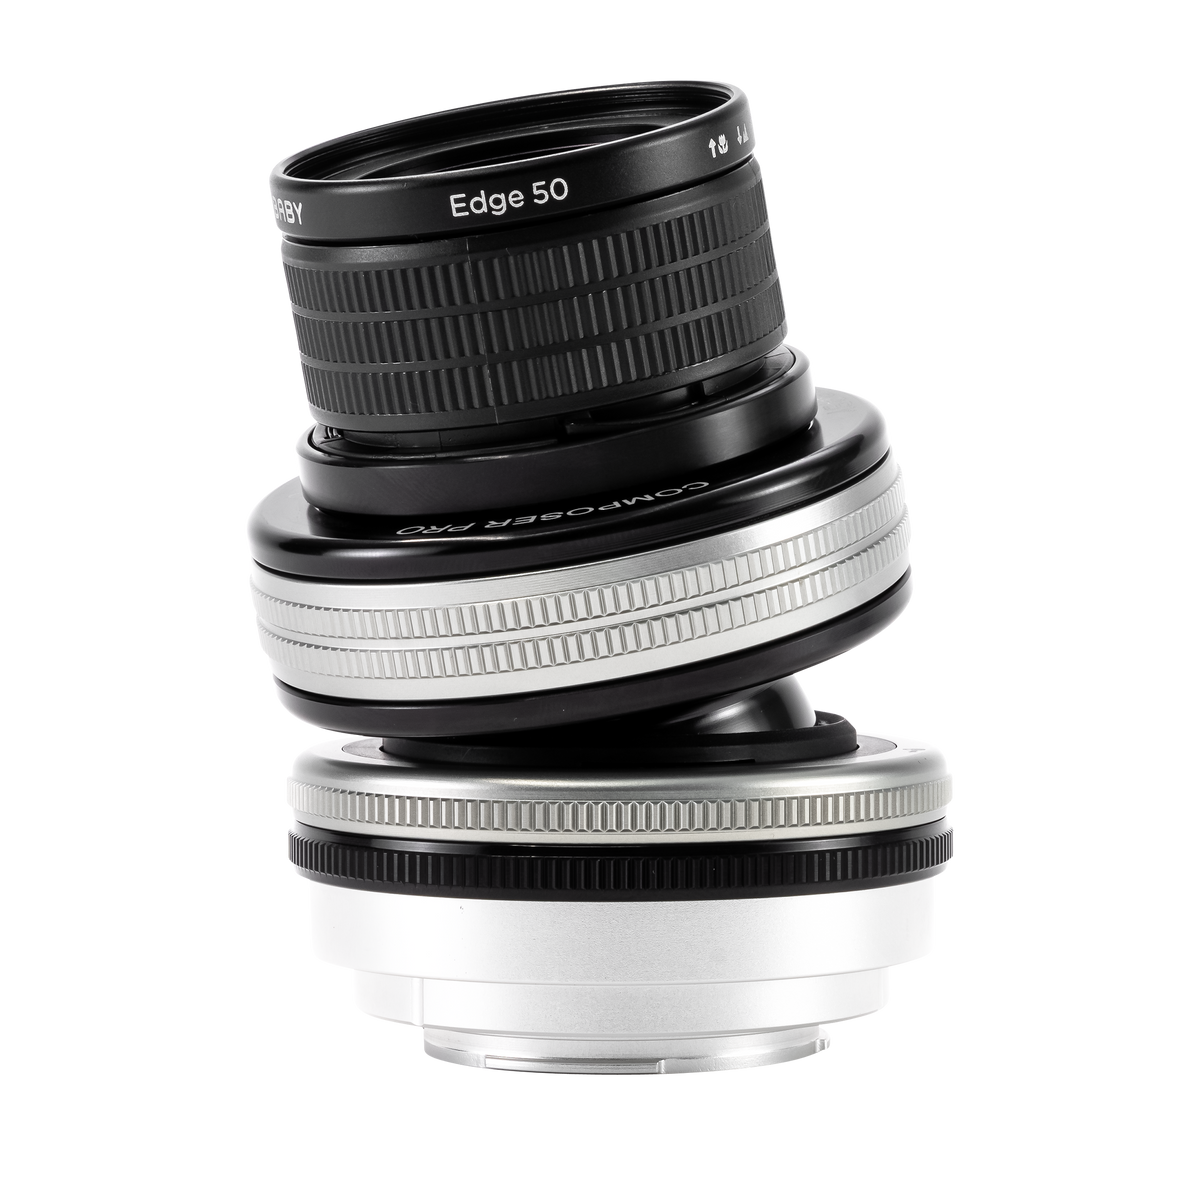 Composer Pro II with Edge 50 - Lensbaby Creative Effect Camera Lenses